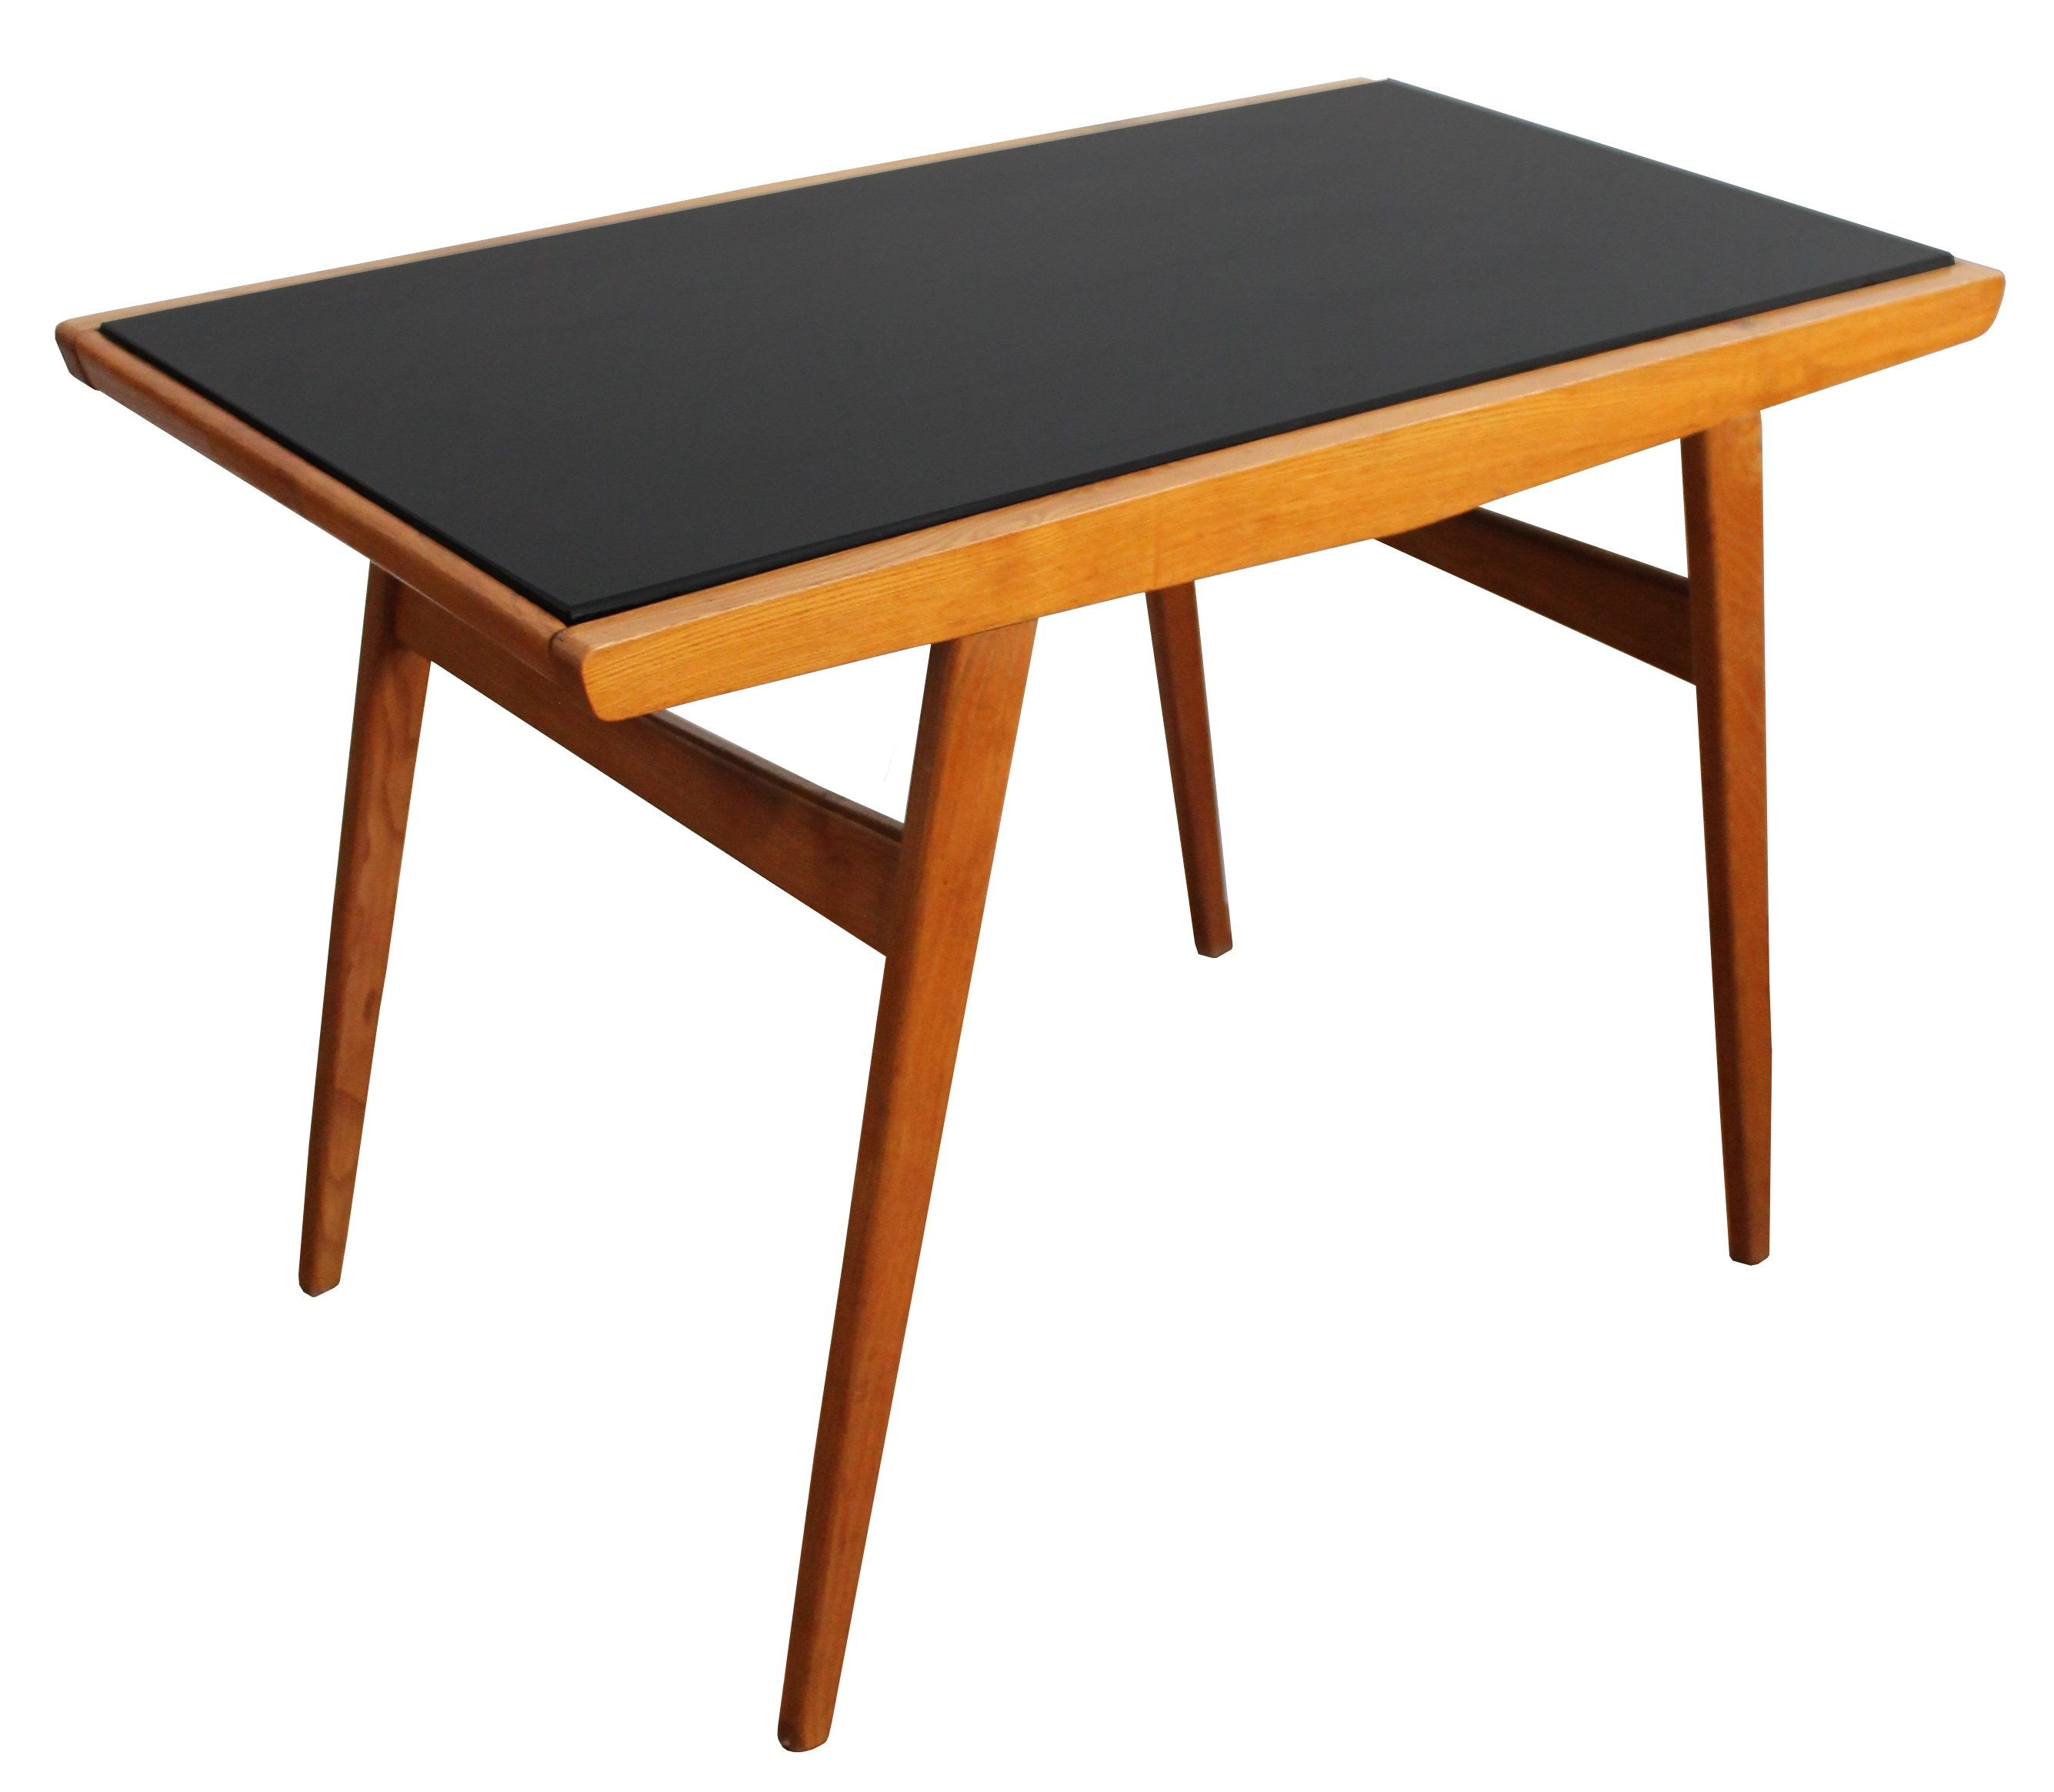 Image of: Mid Century Ash Coffee Table With Black Opaxite Glass Tabletop 120132